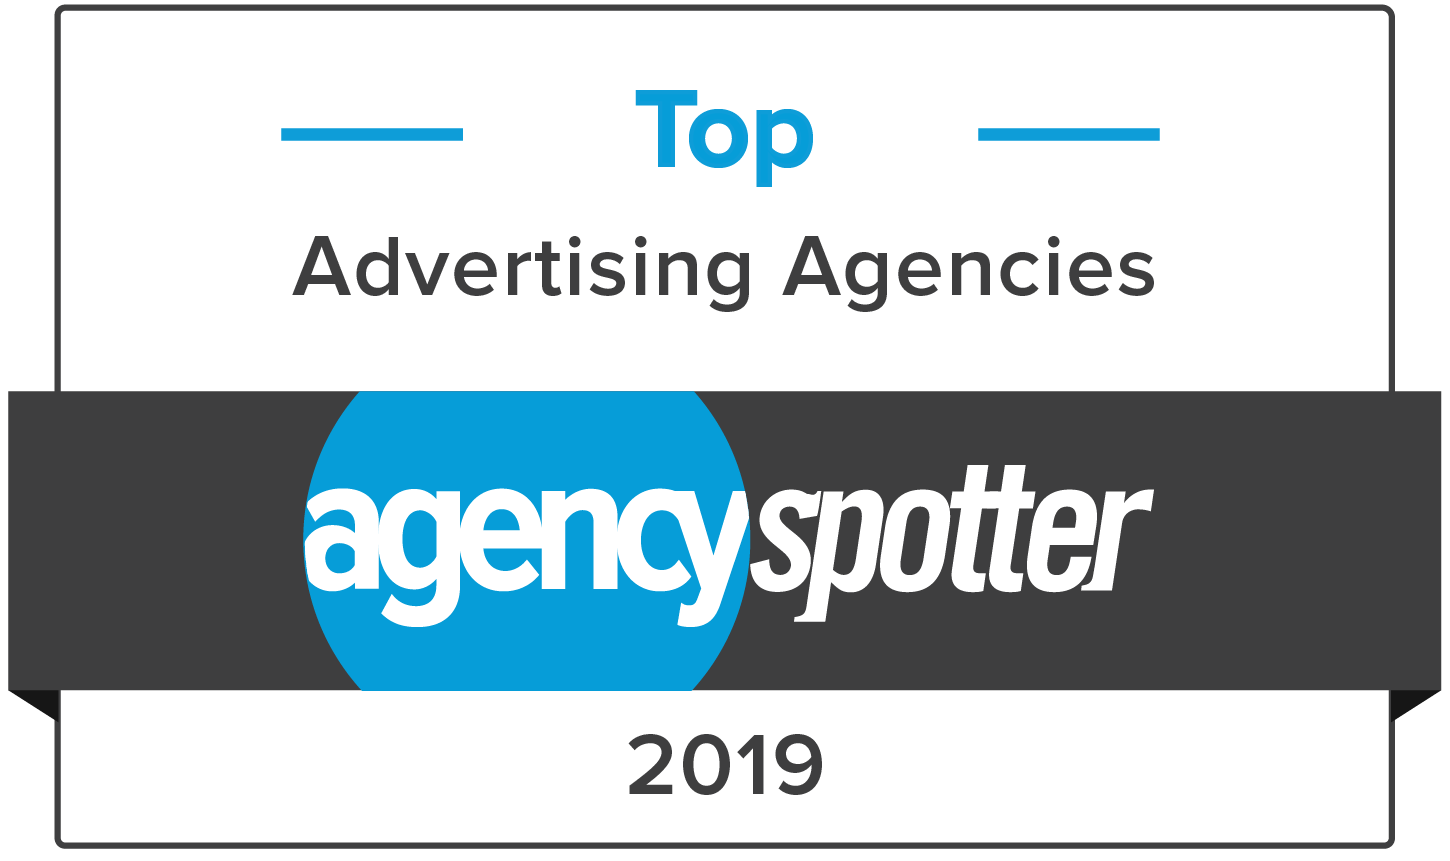 Top advertising agencies 2019 023a8db858c2fbd1902f29c08b5890995a9697e278bd739829a6db049f02d750